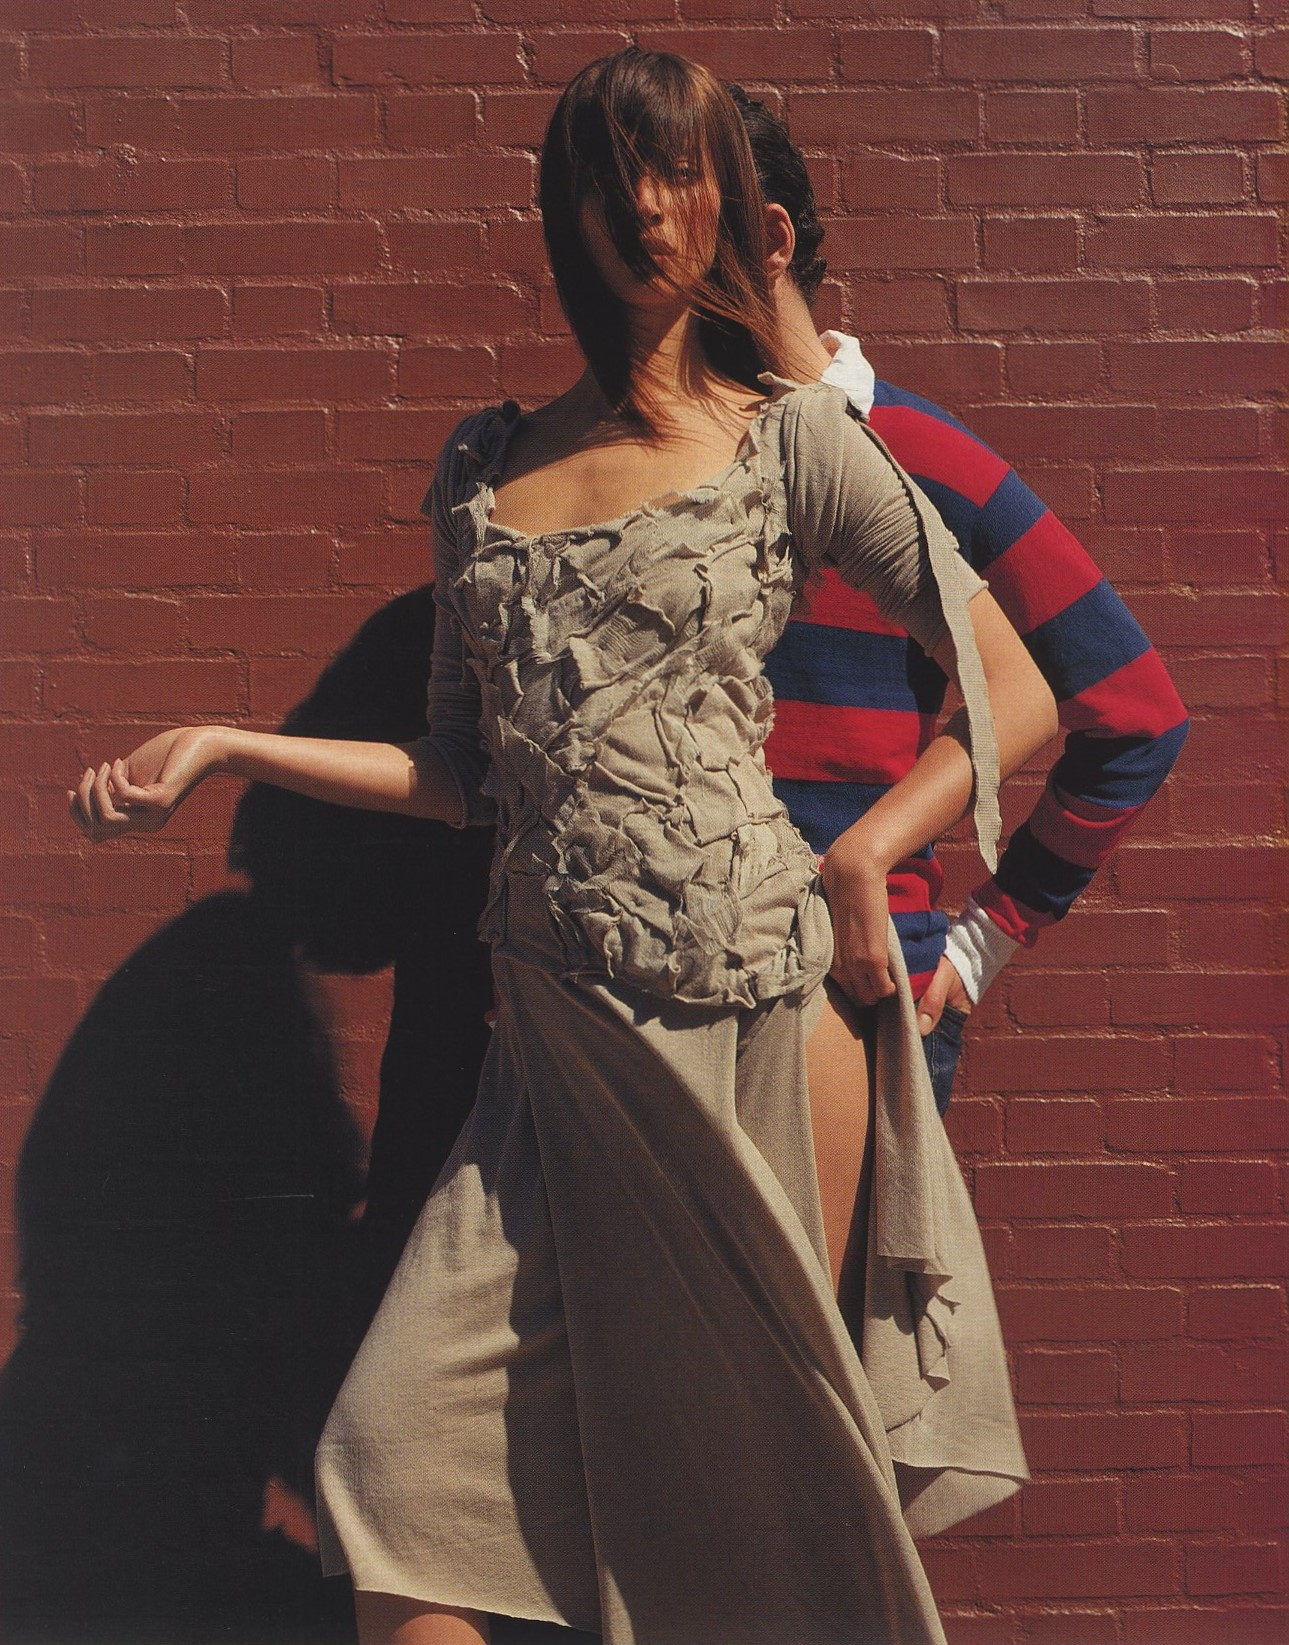 HOUSE STYLE | CHRISTY TURLINGTON | PHOTOGRAPHY INEZ VAN LAMSWEERDE & VINOODH MATADIN | NOVA | JULY 2000